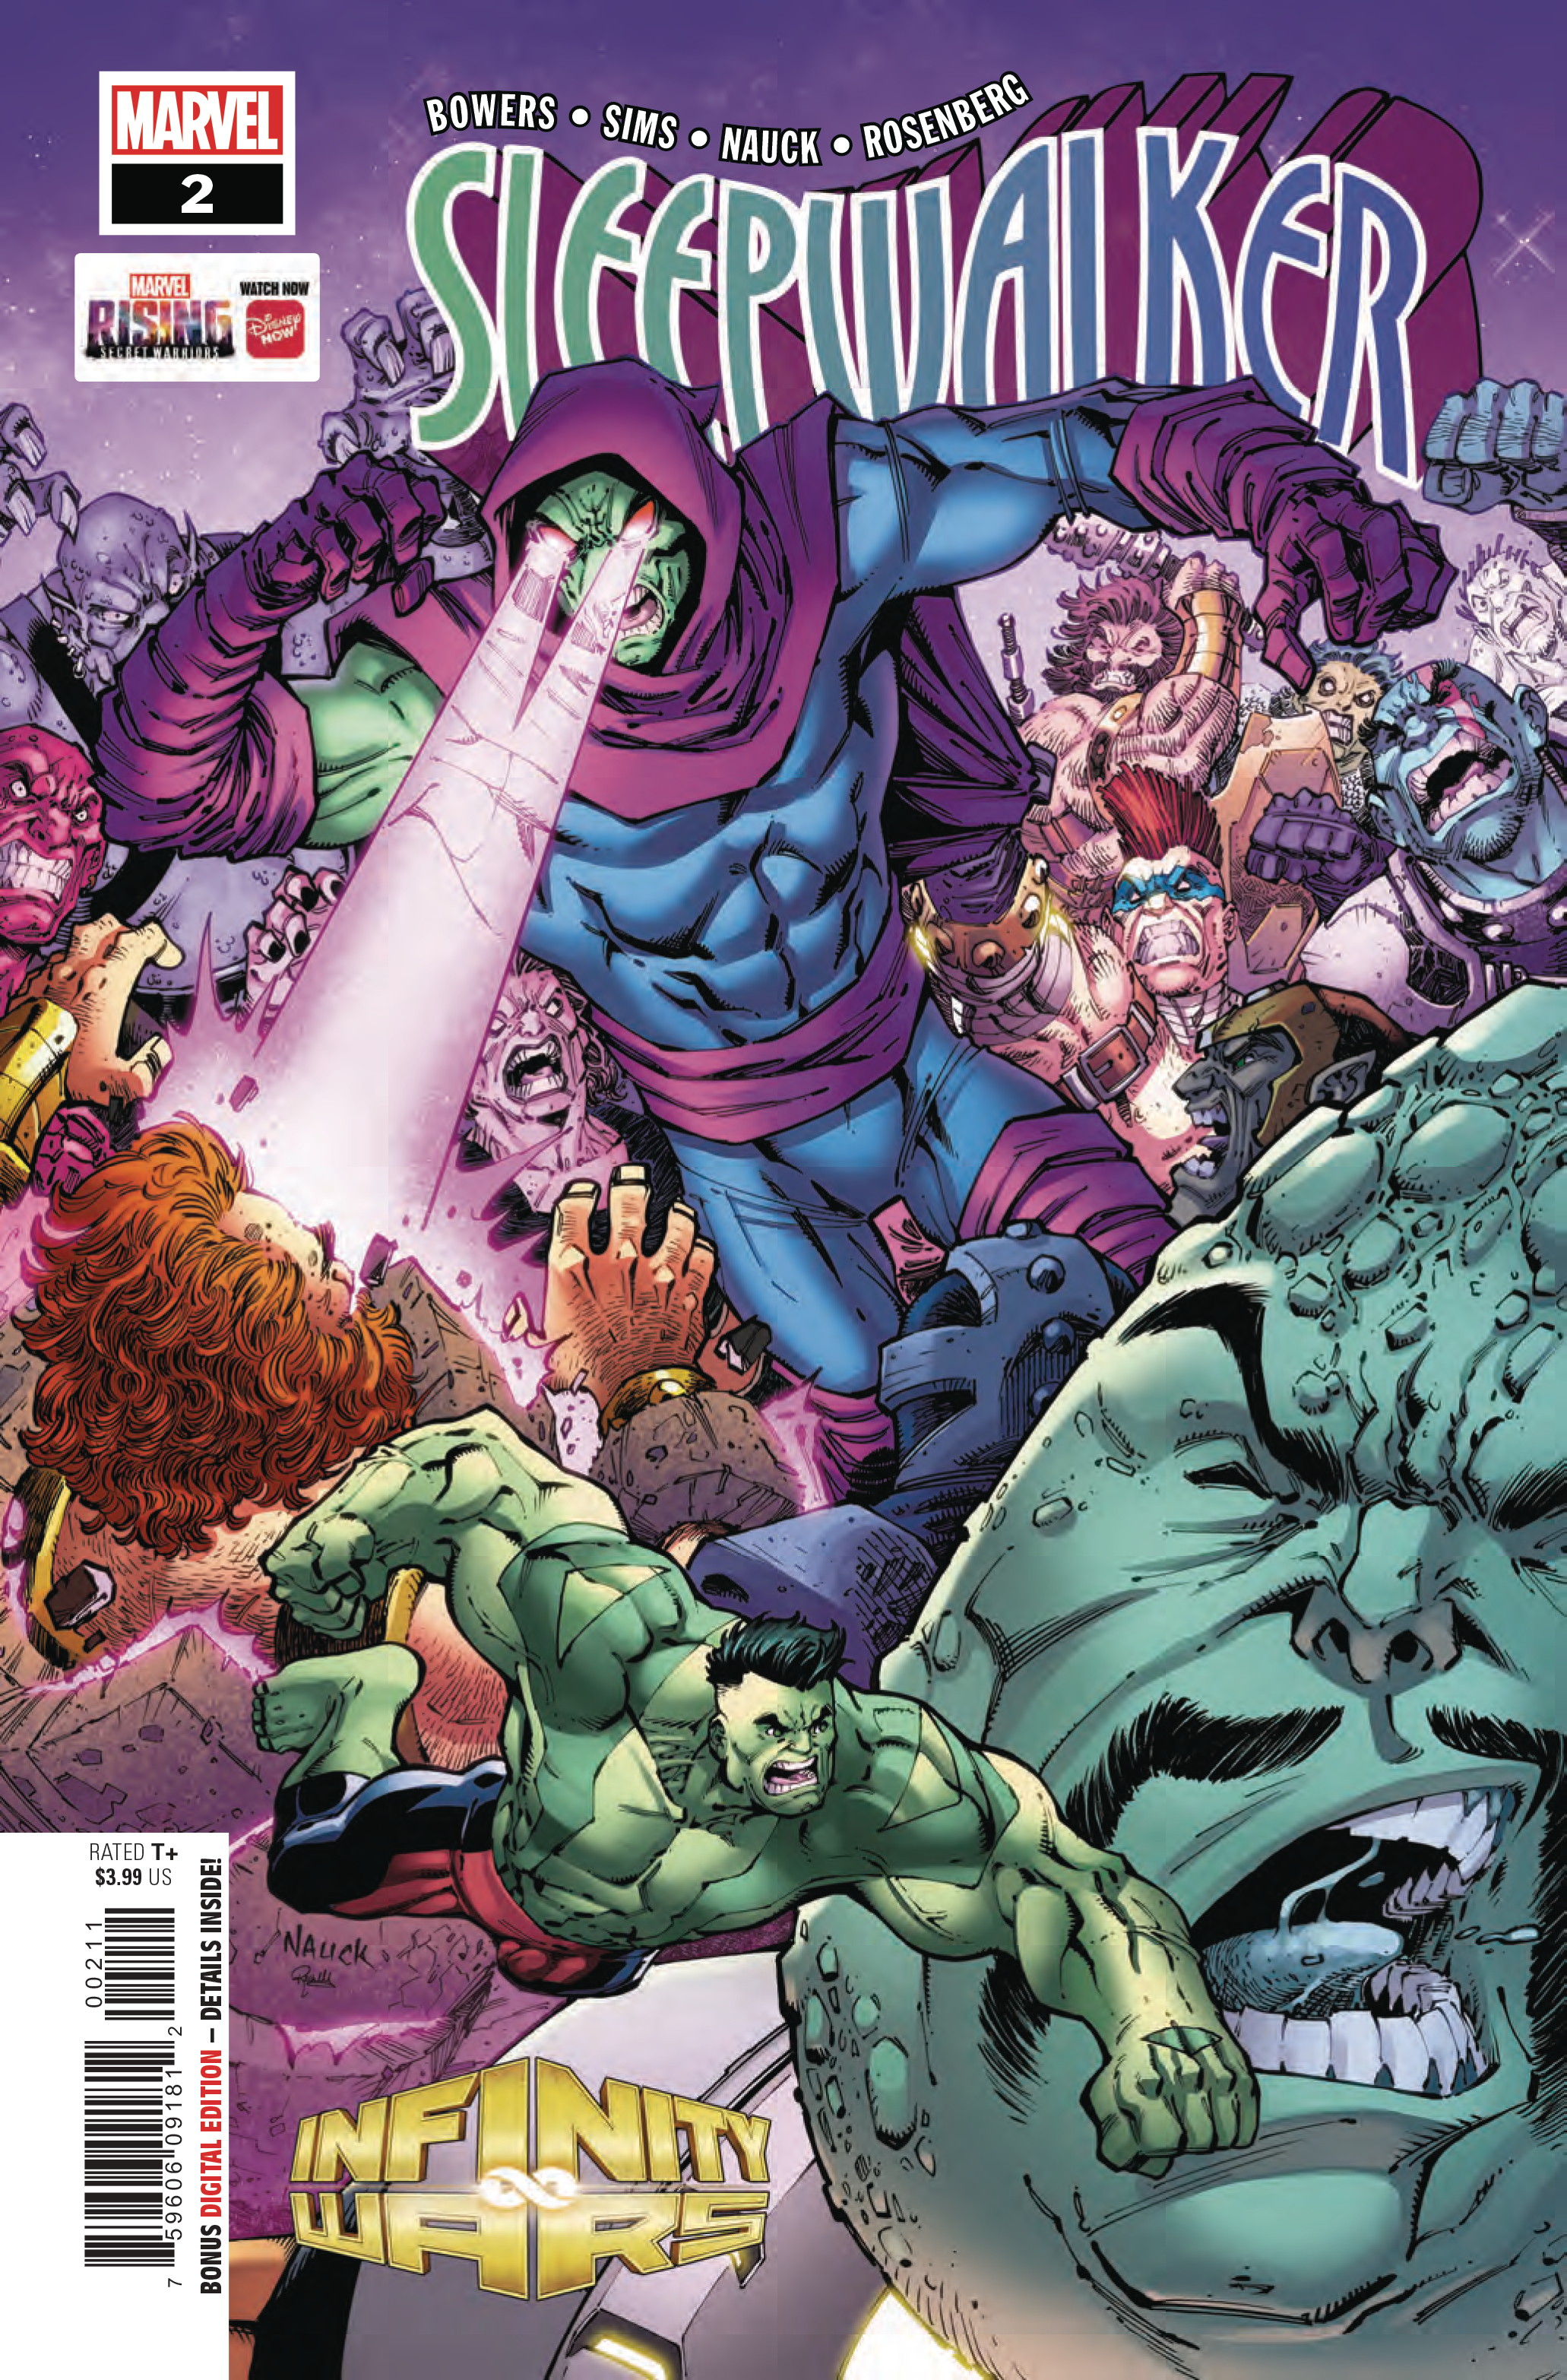 INFINITY WARS SLEEPWALKER #2 (OF 4)